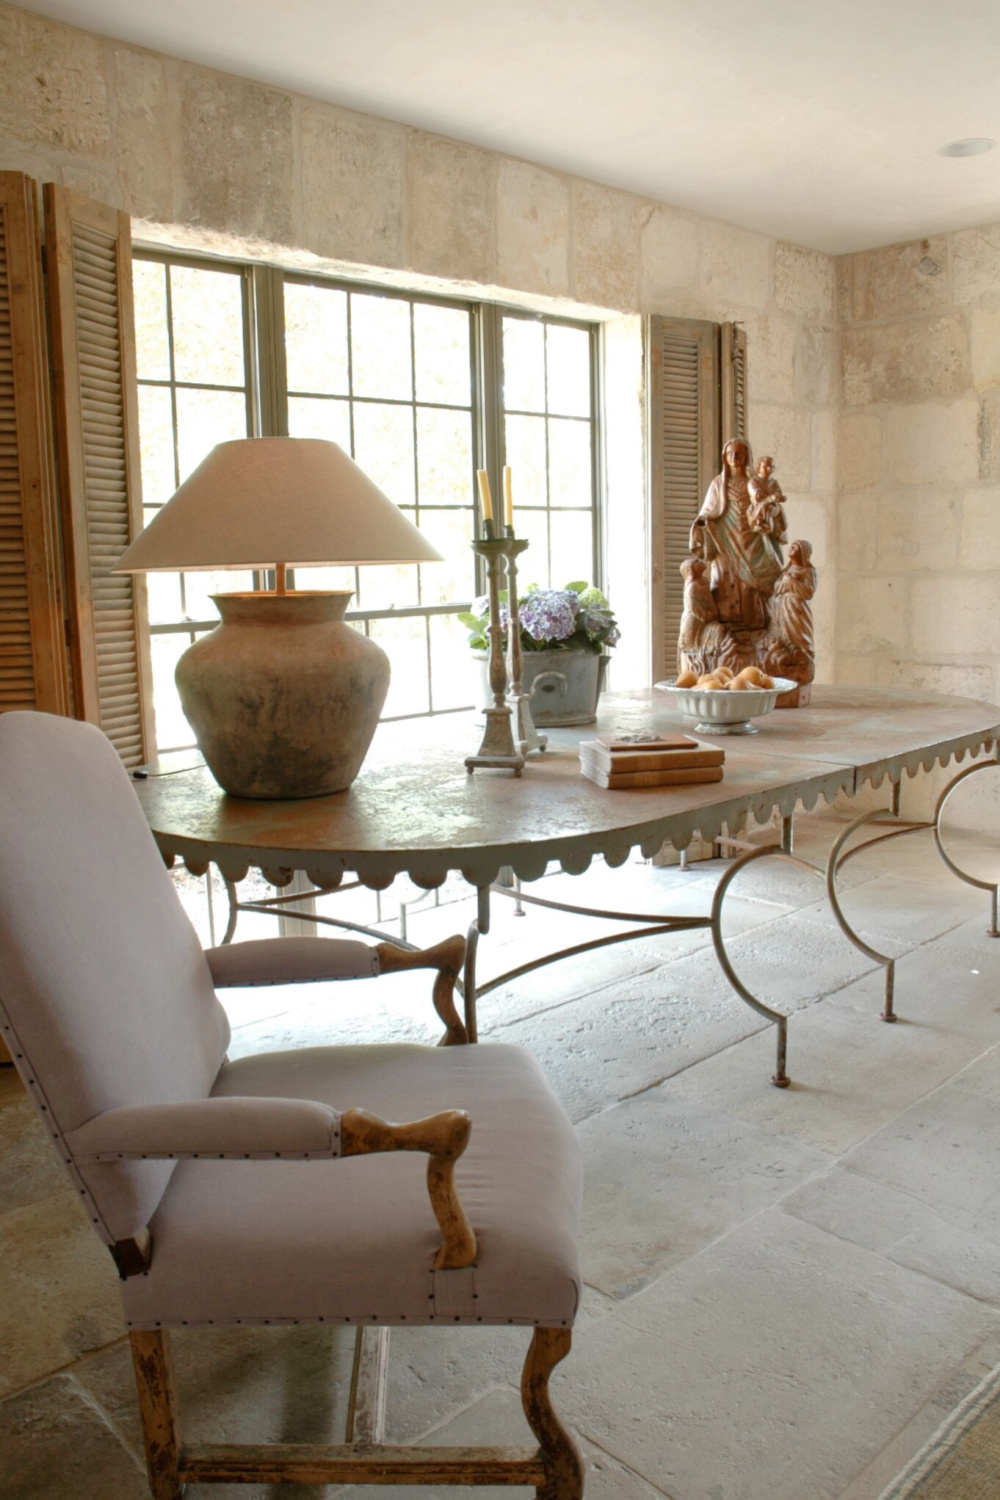 Country French romance, authenticity, and aged beauty in this interior from Chateau Domingue. #stonewalls #countryfrench #oldworldstyle